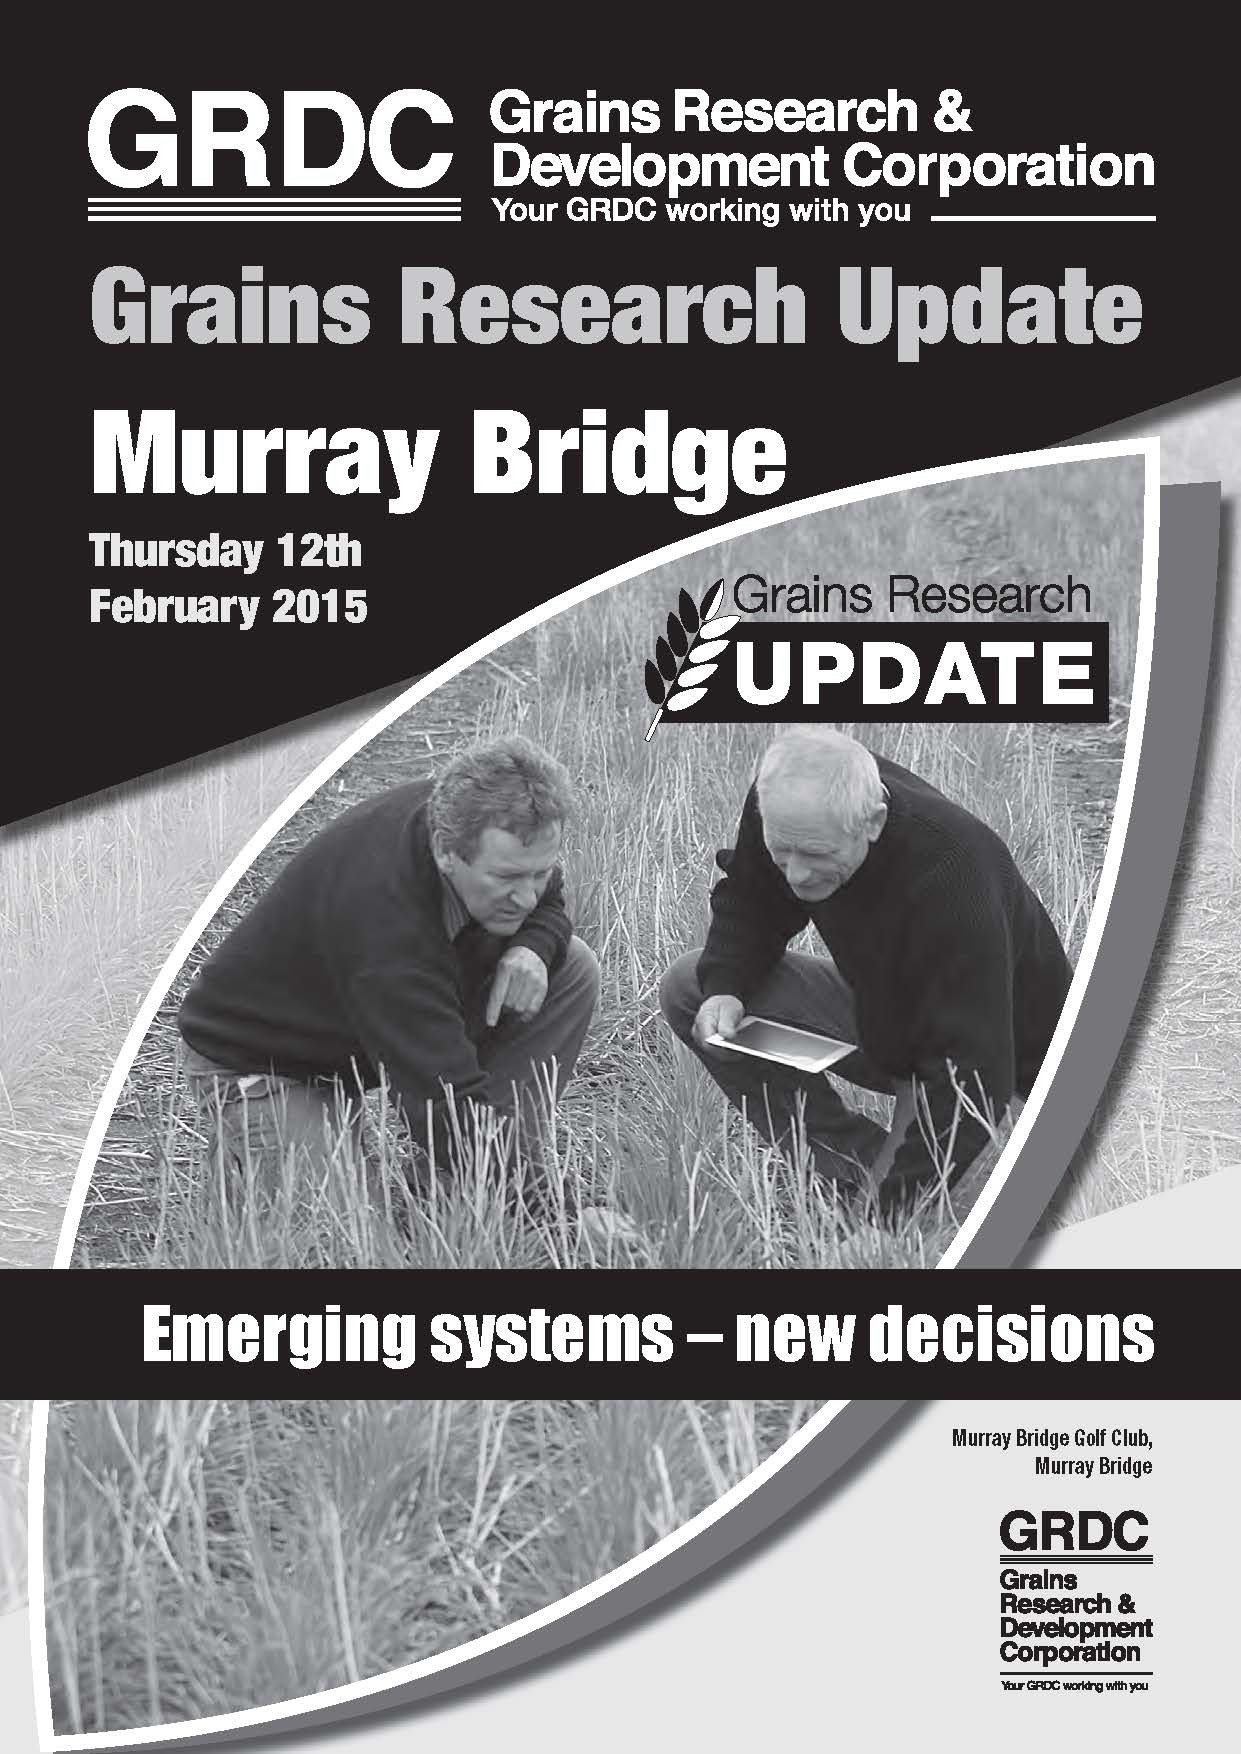 GRDC Grains Research Update Murray Bridge 2015 cover